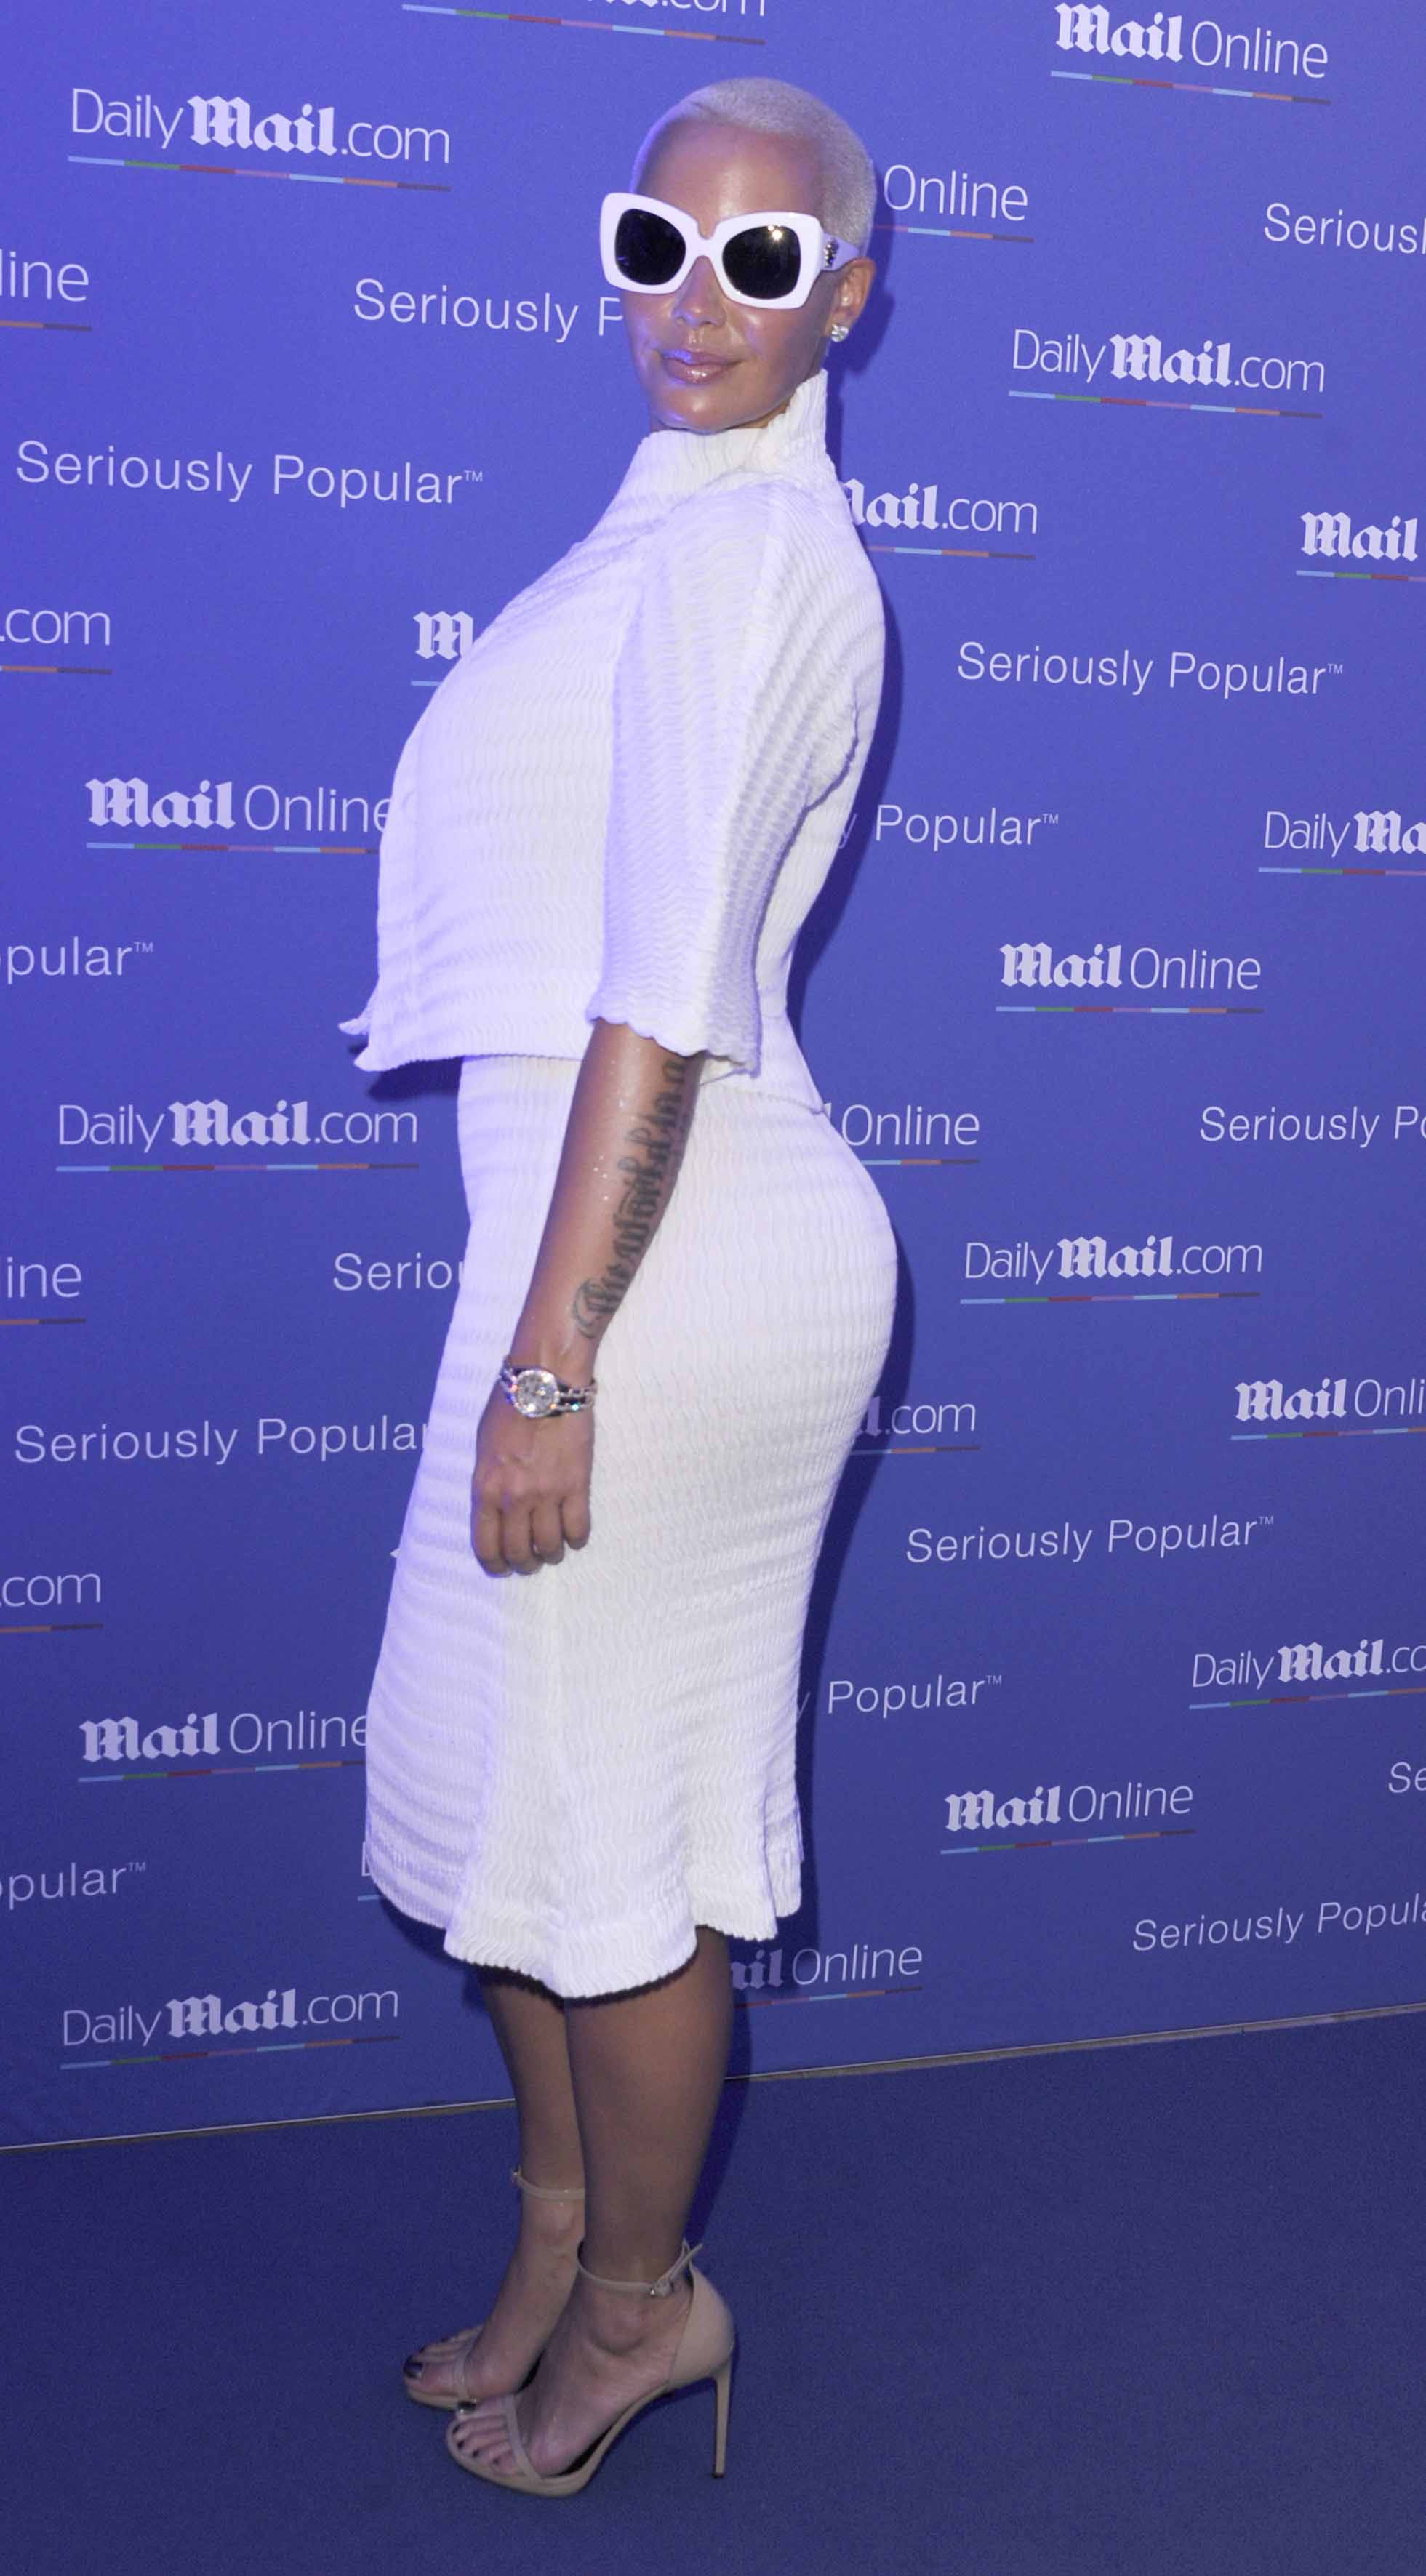 Get The Best Makeup Looks Inspired By Celebs: Get The Look: Amber Rose Slays In Sleek All-White Ensemble